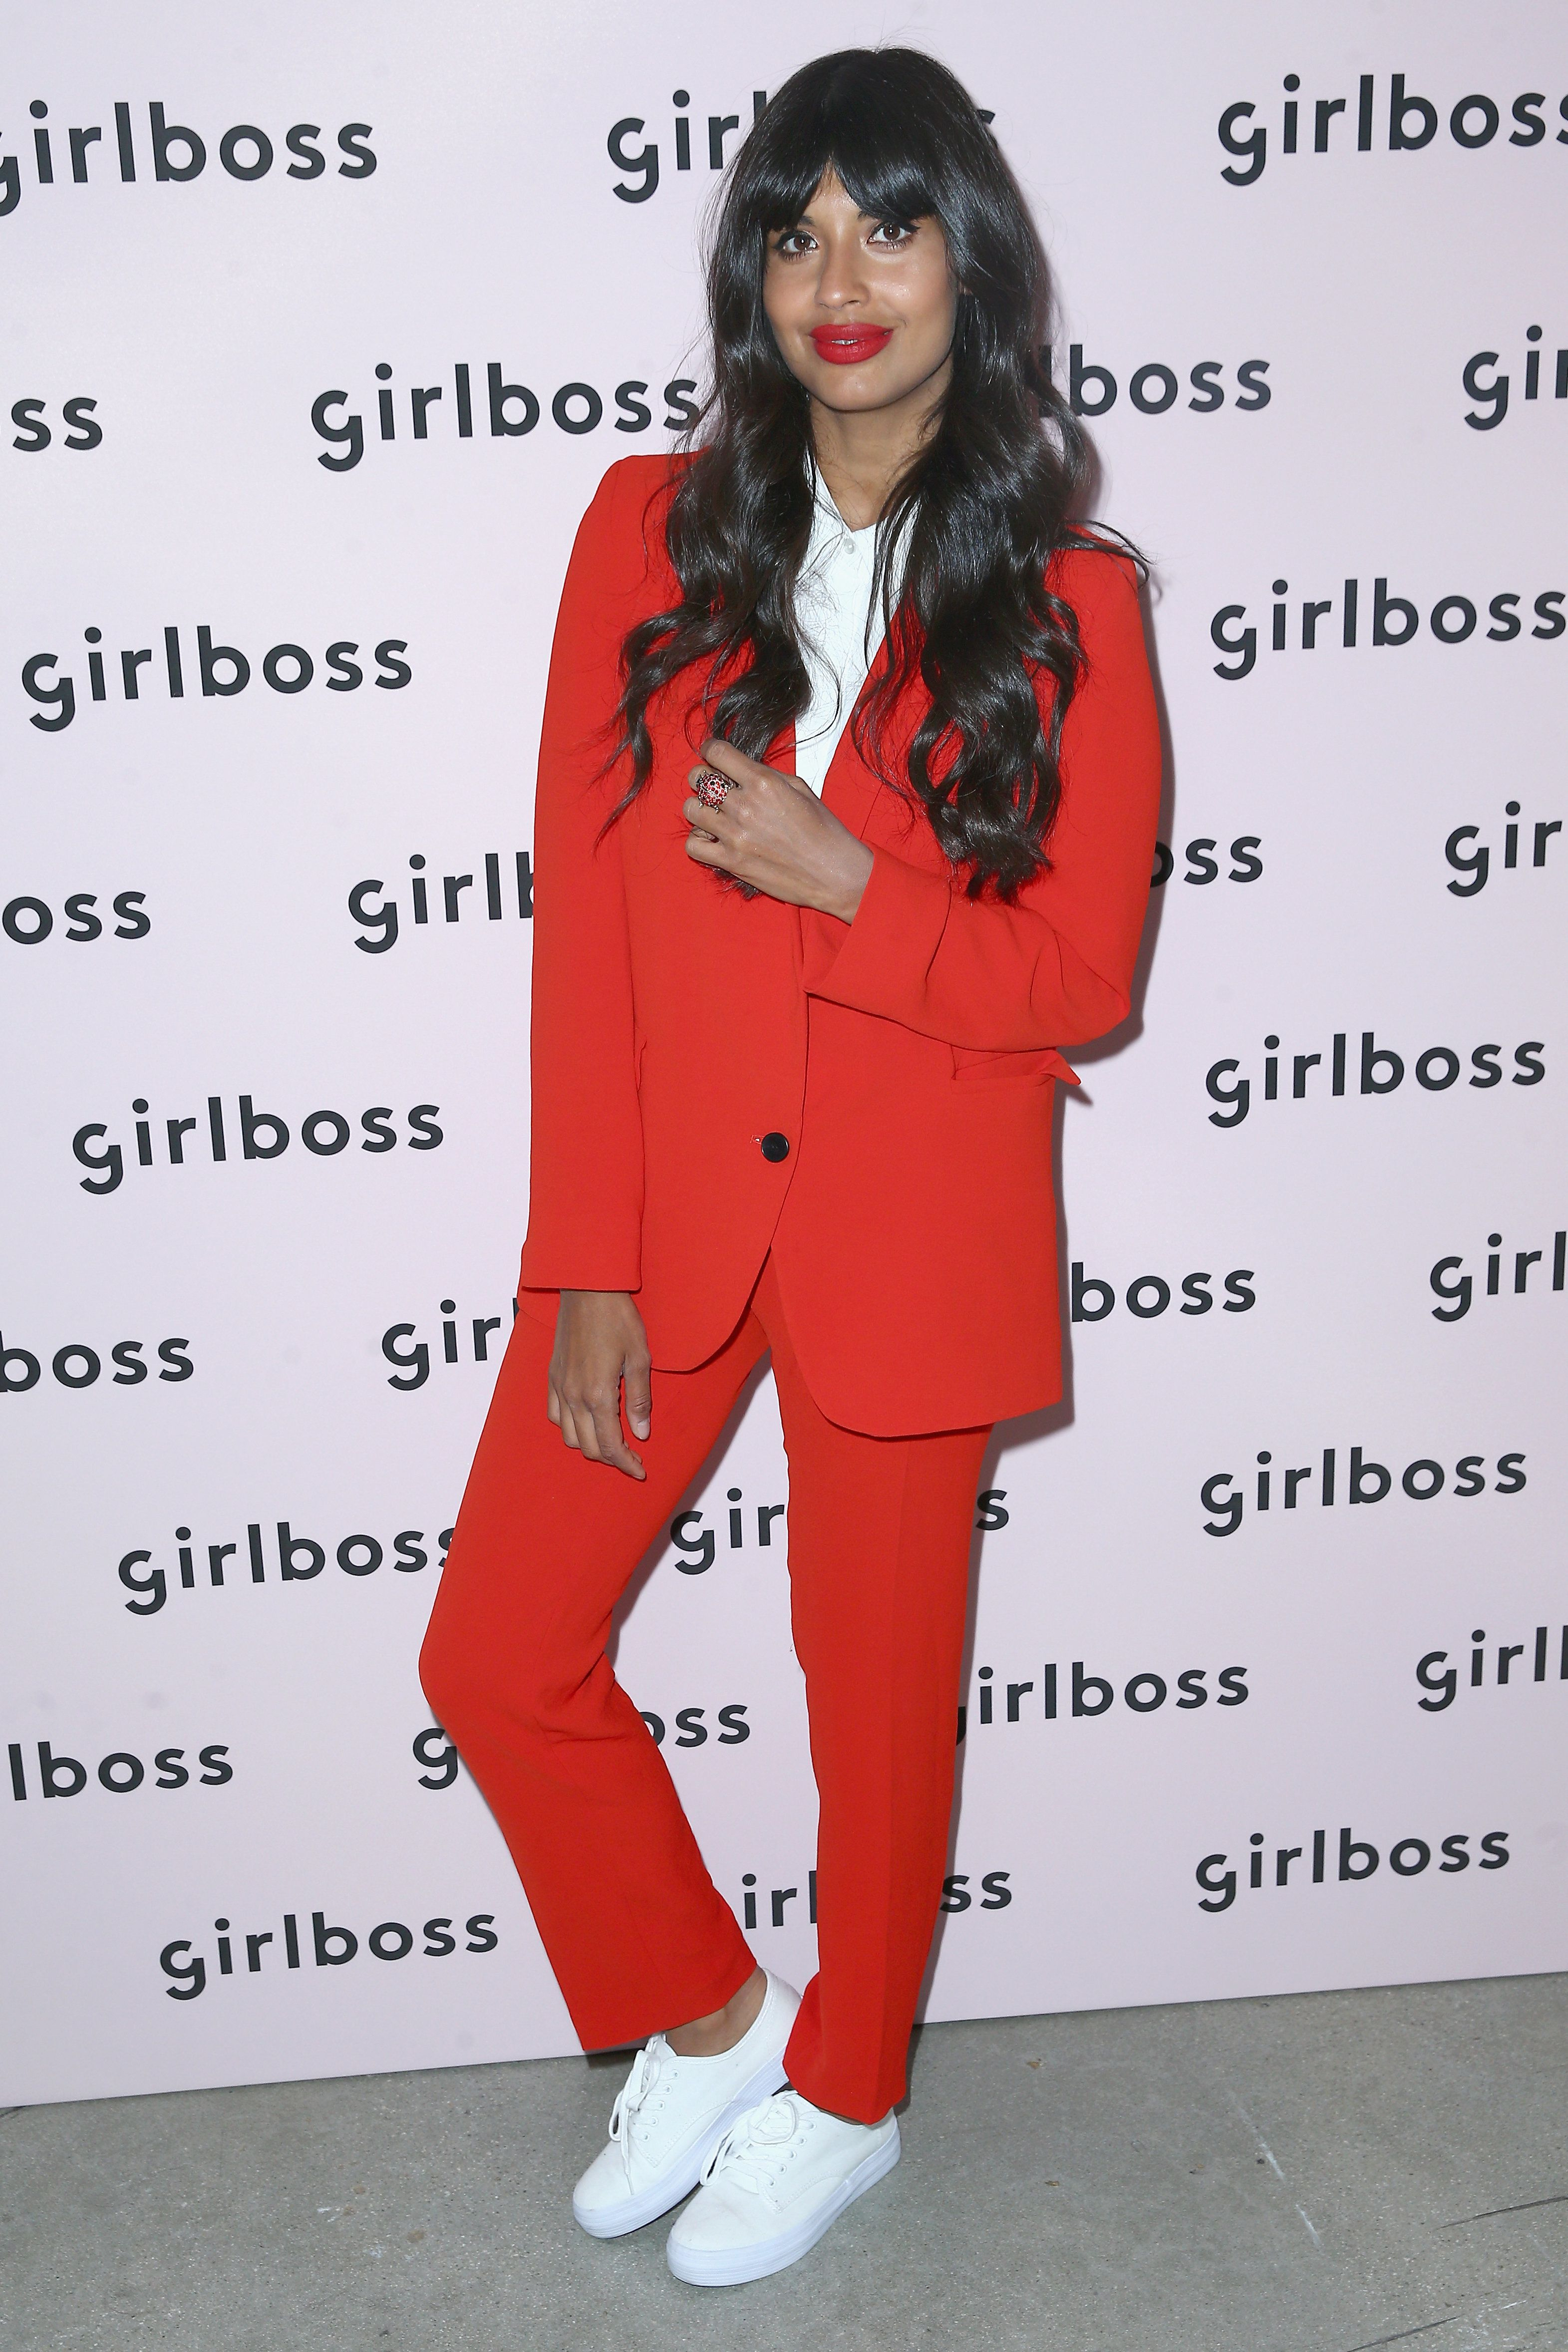 Jameela Jamil Is The Feminist Style Icon We've Been Waiting